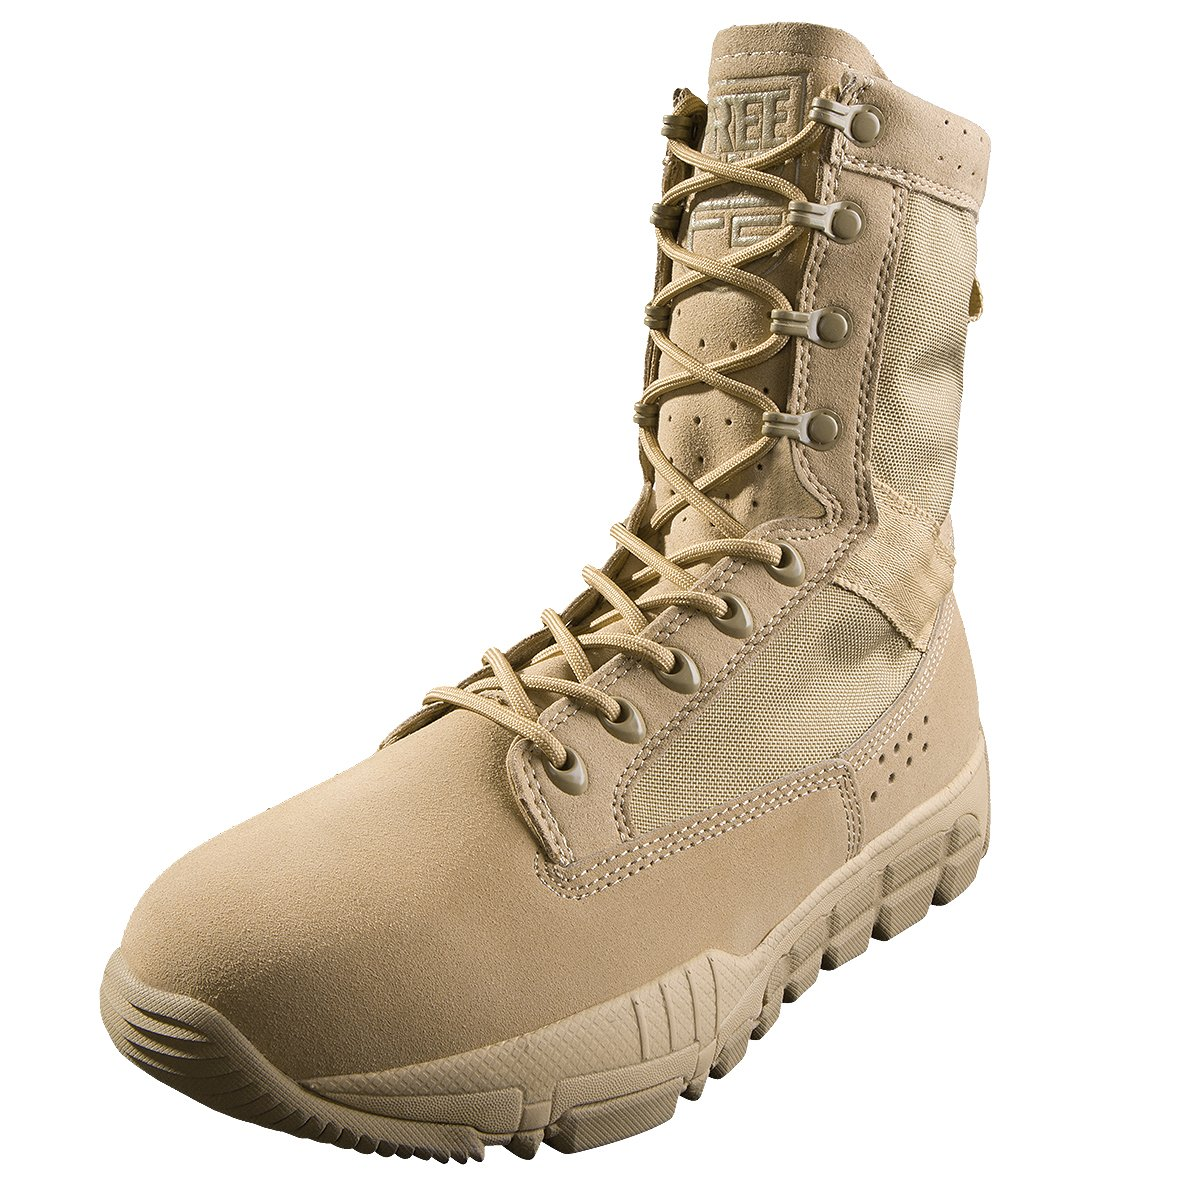 FREE SOLDIER Men's Outdoor Ultralight Breathable Military Desert Boots Tactical Duty Work Boot(Desert Tan 8.5)